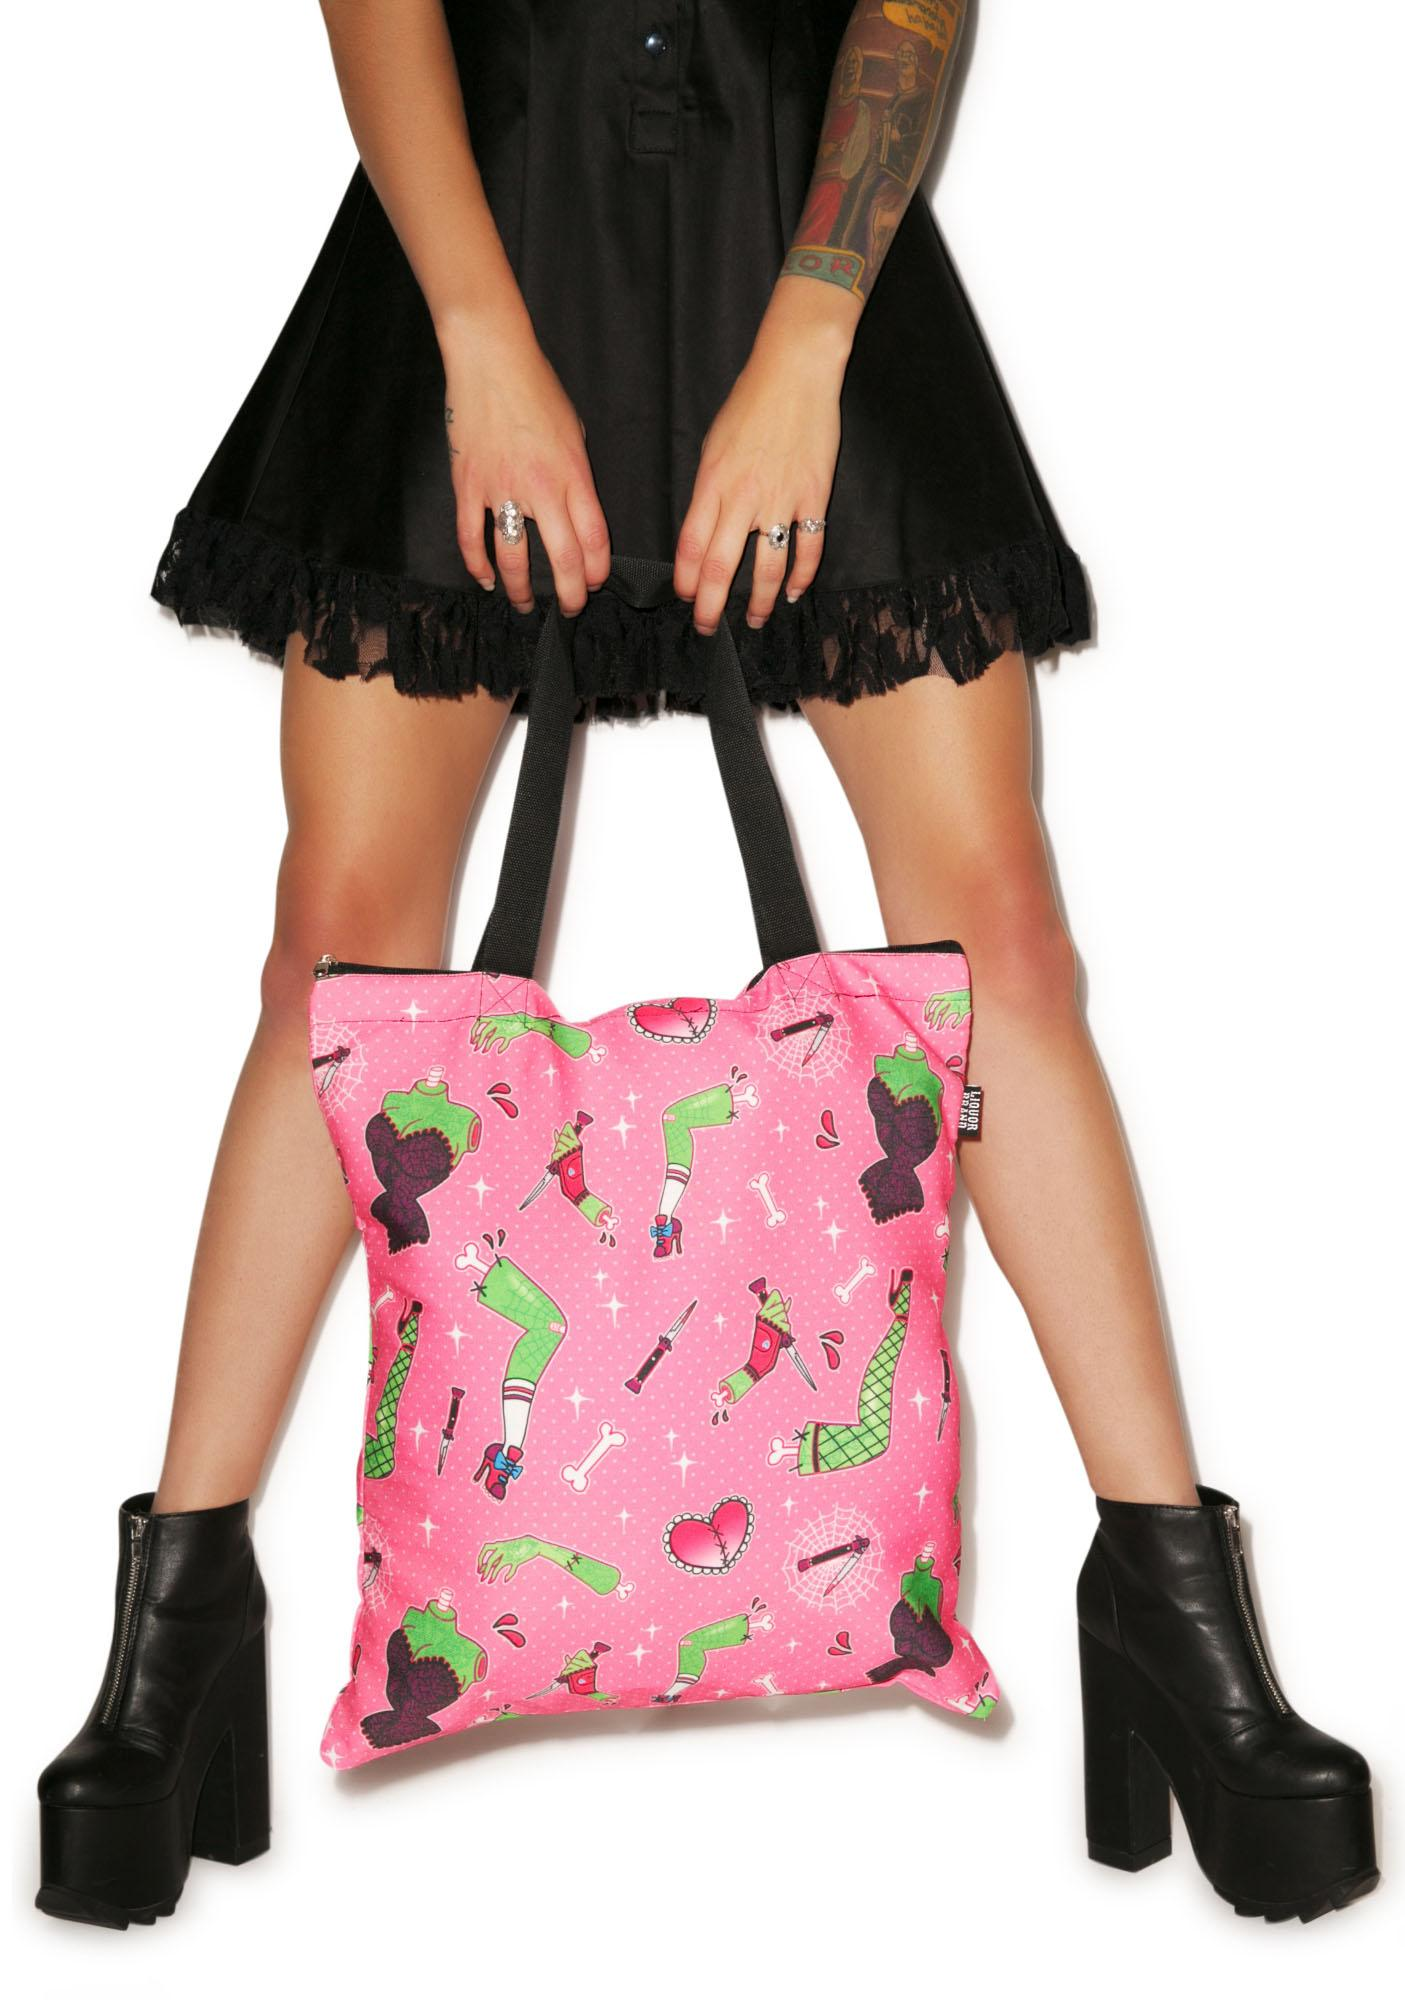 Bits N' Pieces Tote Bag